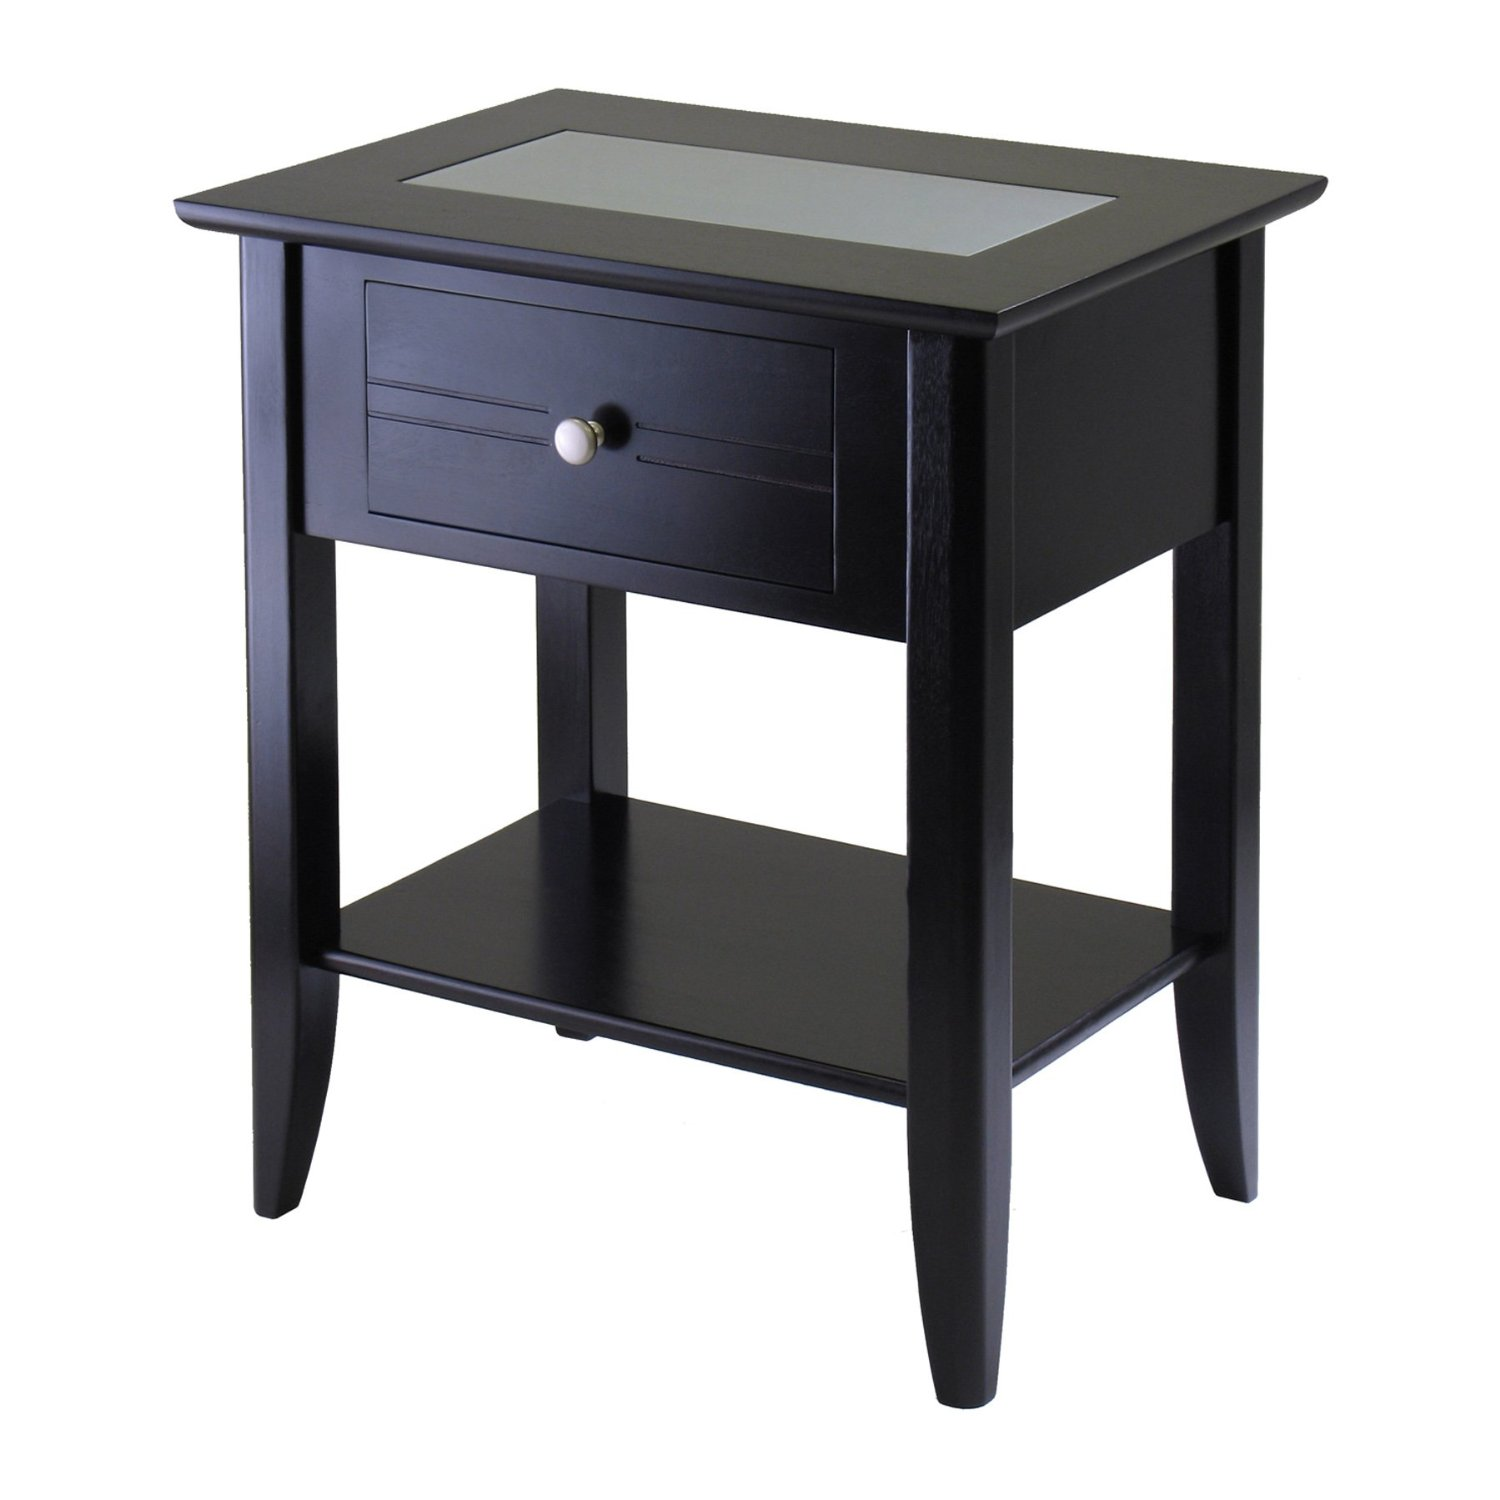 retro black oak wood side table with shelf stretcher impressive winsome end drawer and dark night stands ideas white pedestal accent ashley furniture dining mirrored very small